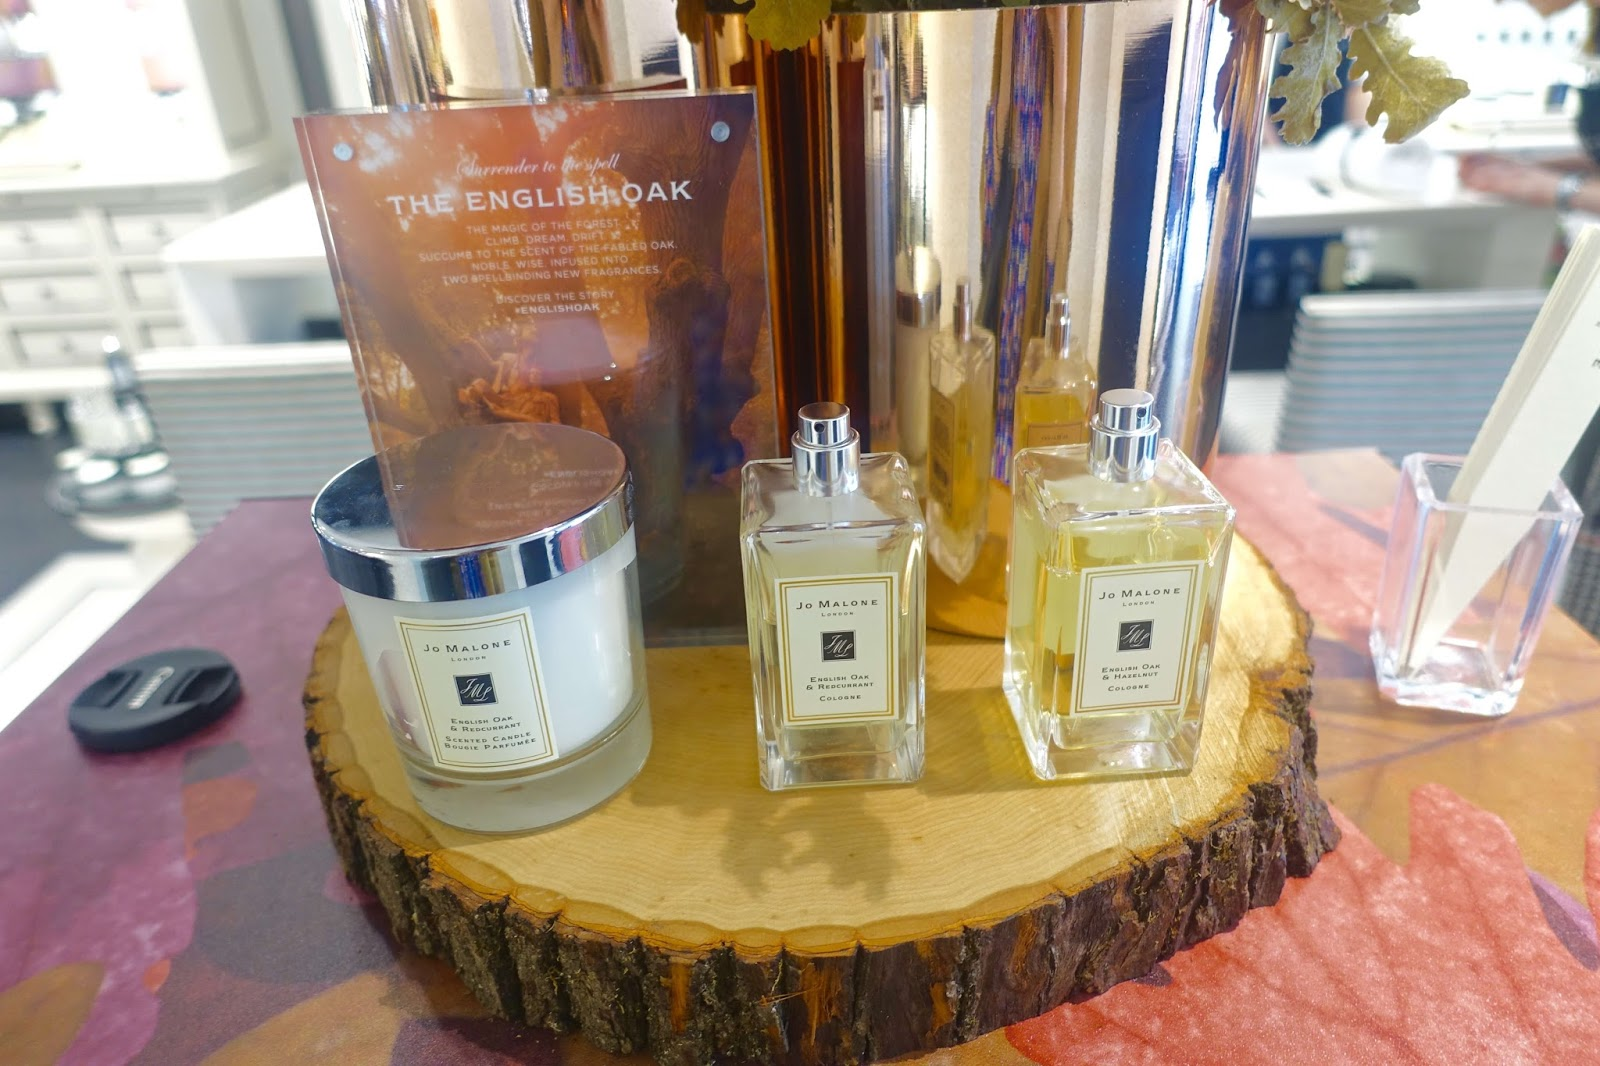 Launch of the new English Oak fragrance